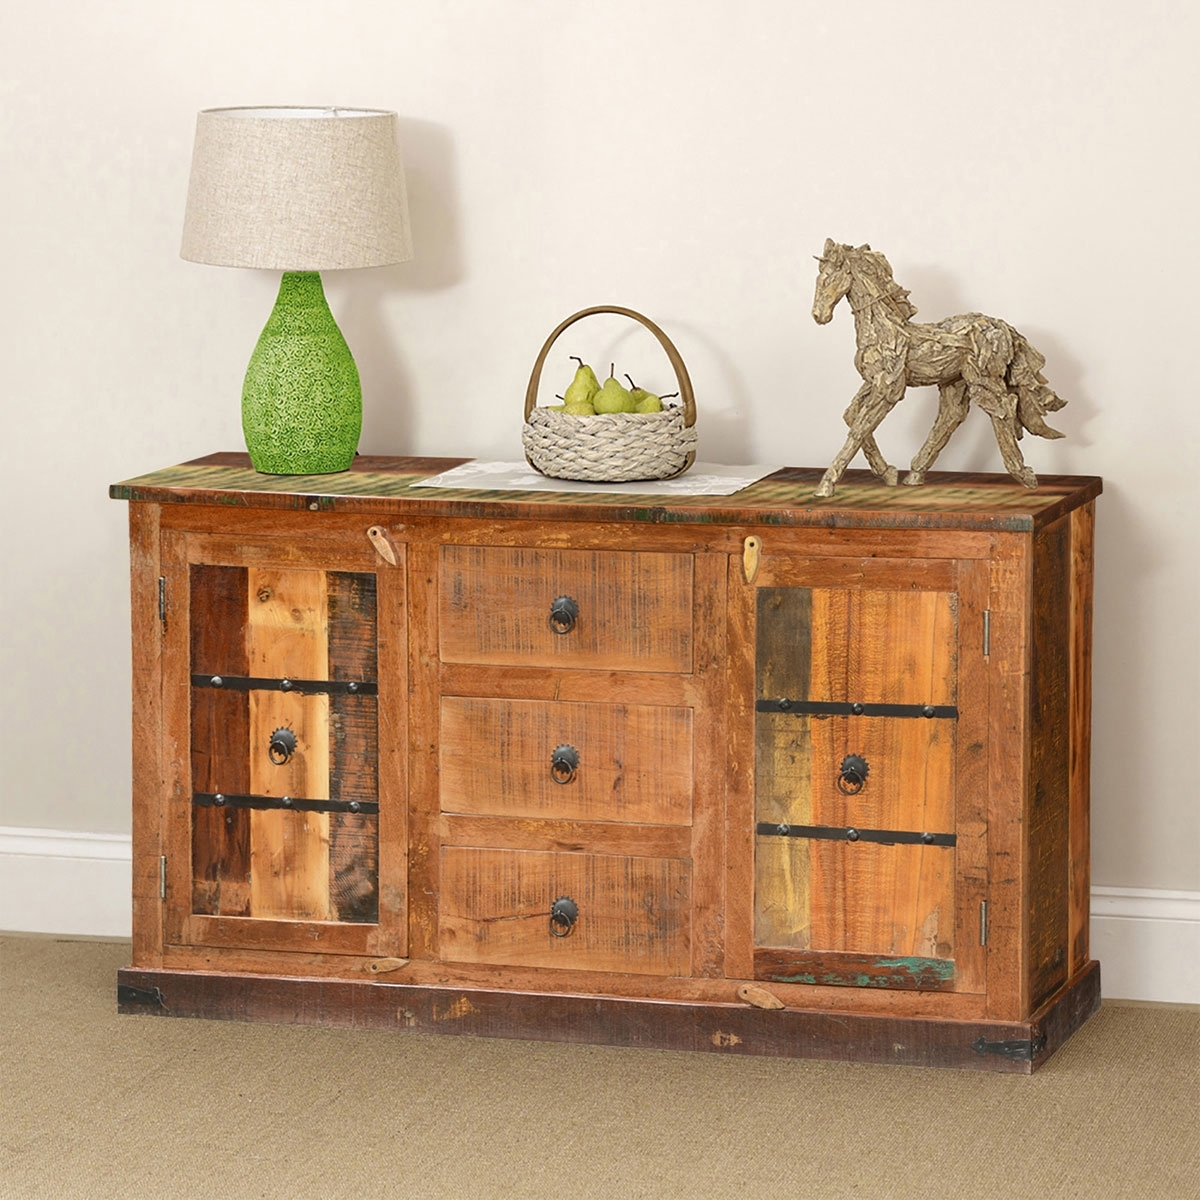 Classic Country Rustic Reclaimed Wood 3 Drawer Sideboard Cabinet with regard to Starburst 3 Door Sideboards (Image 7 of 30)